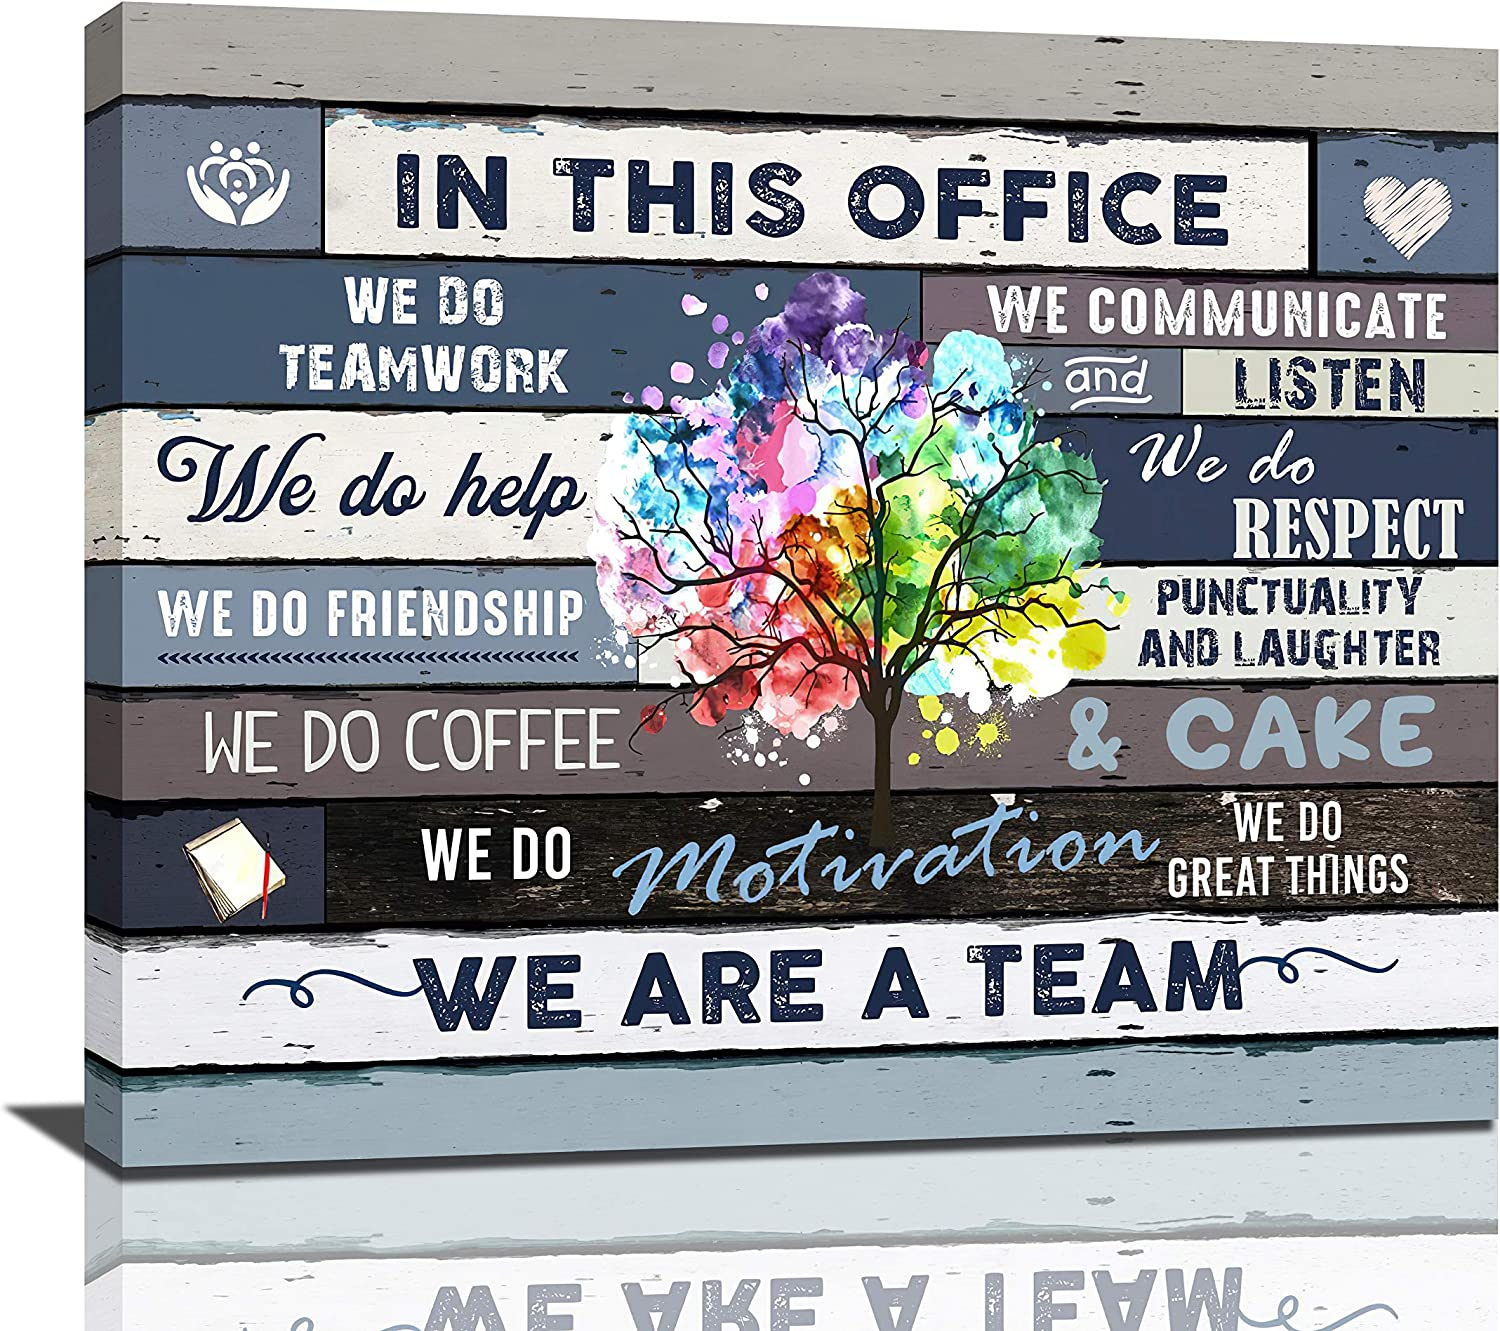 Inspirational Wall Art For Office Motivational Quotes Wall Decor We Are A Team Framed Canvas Wall Art Modern Office Wall Decor Office Size , 24x20 Inch